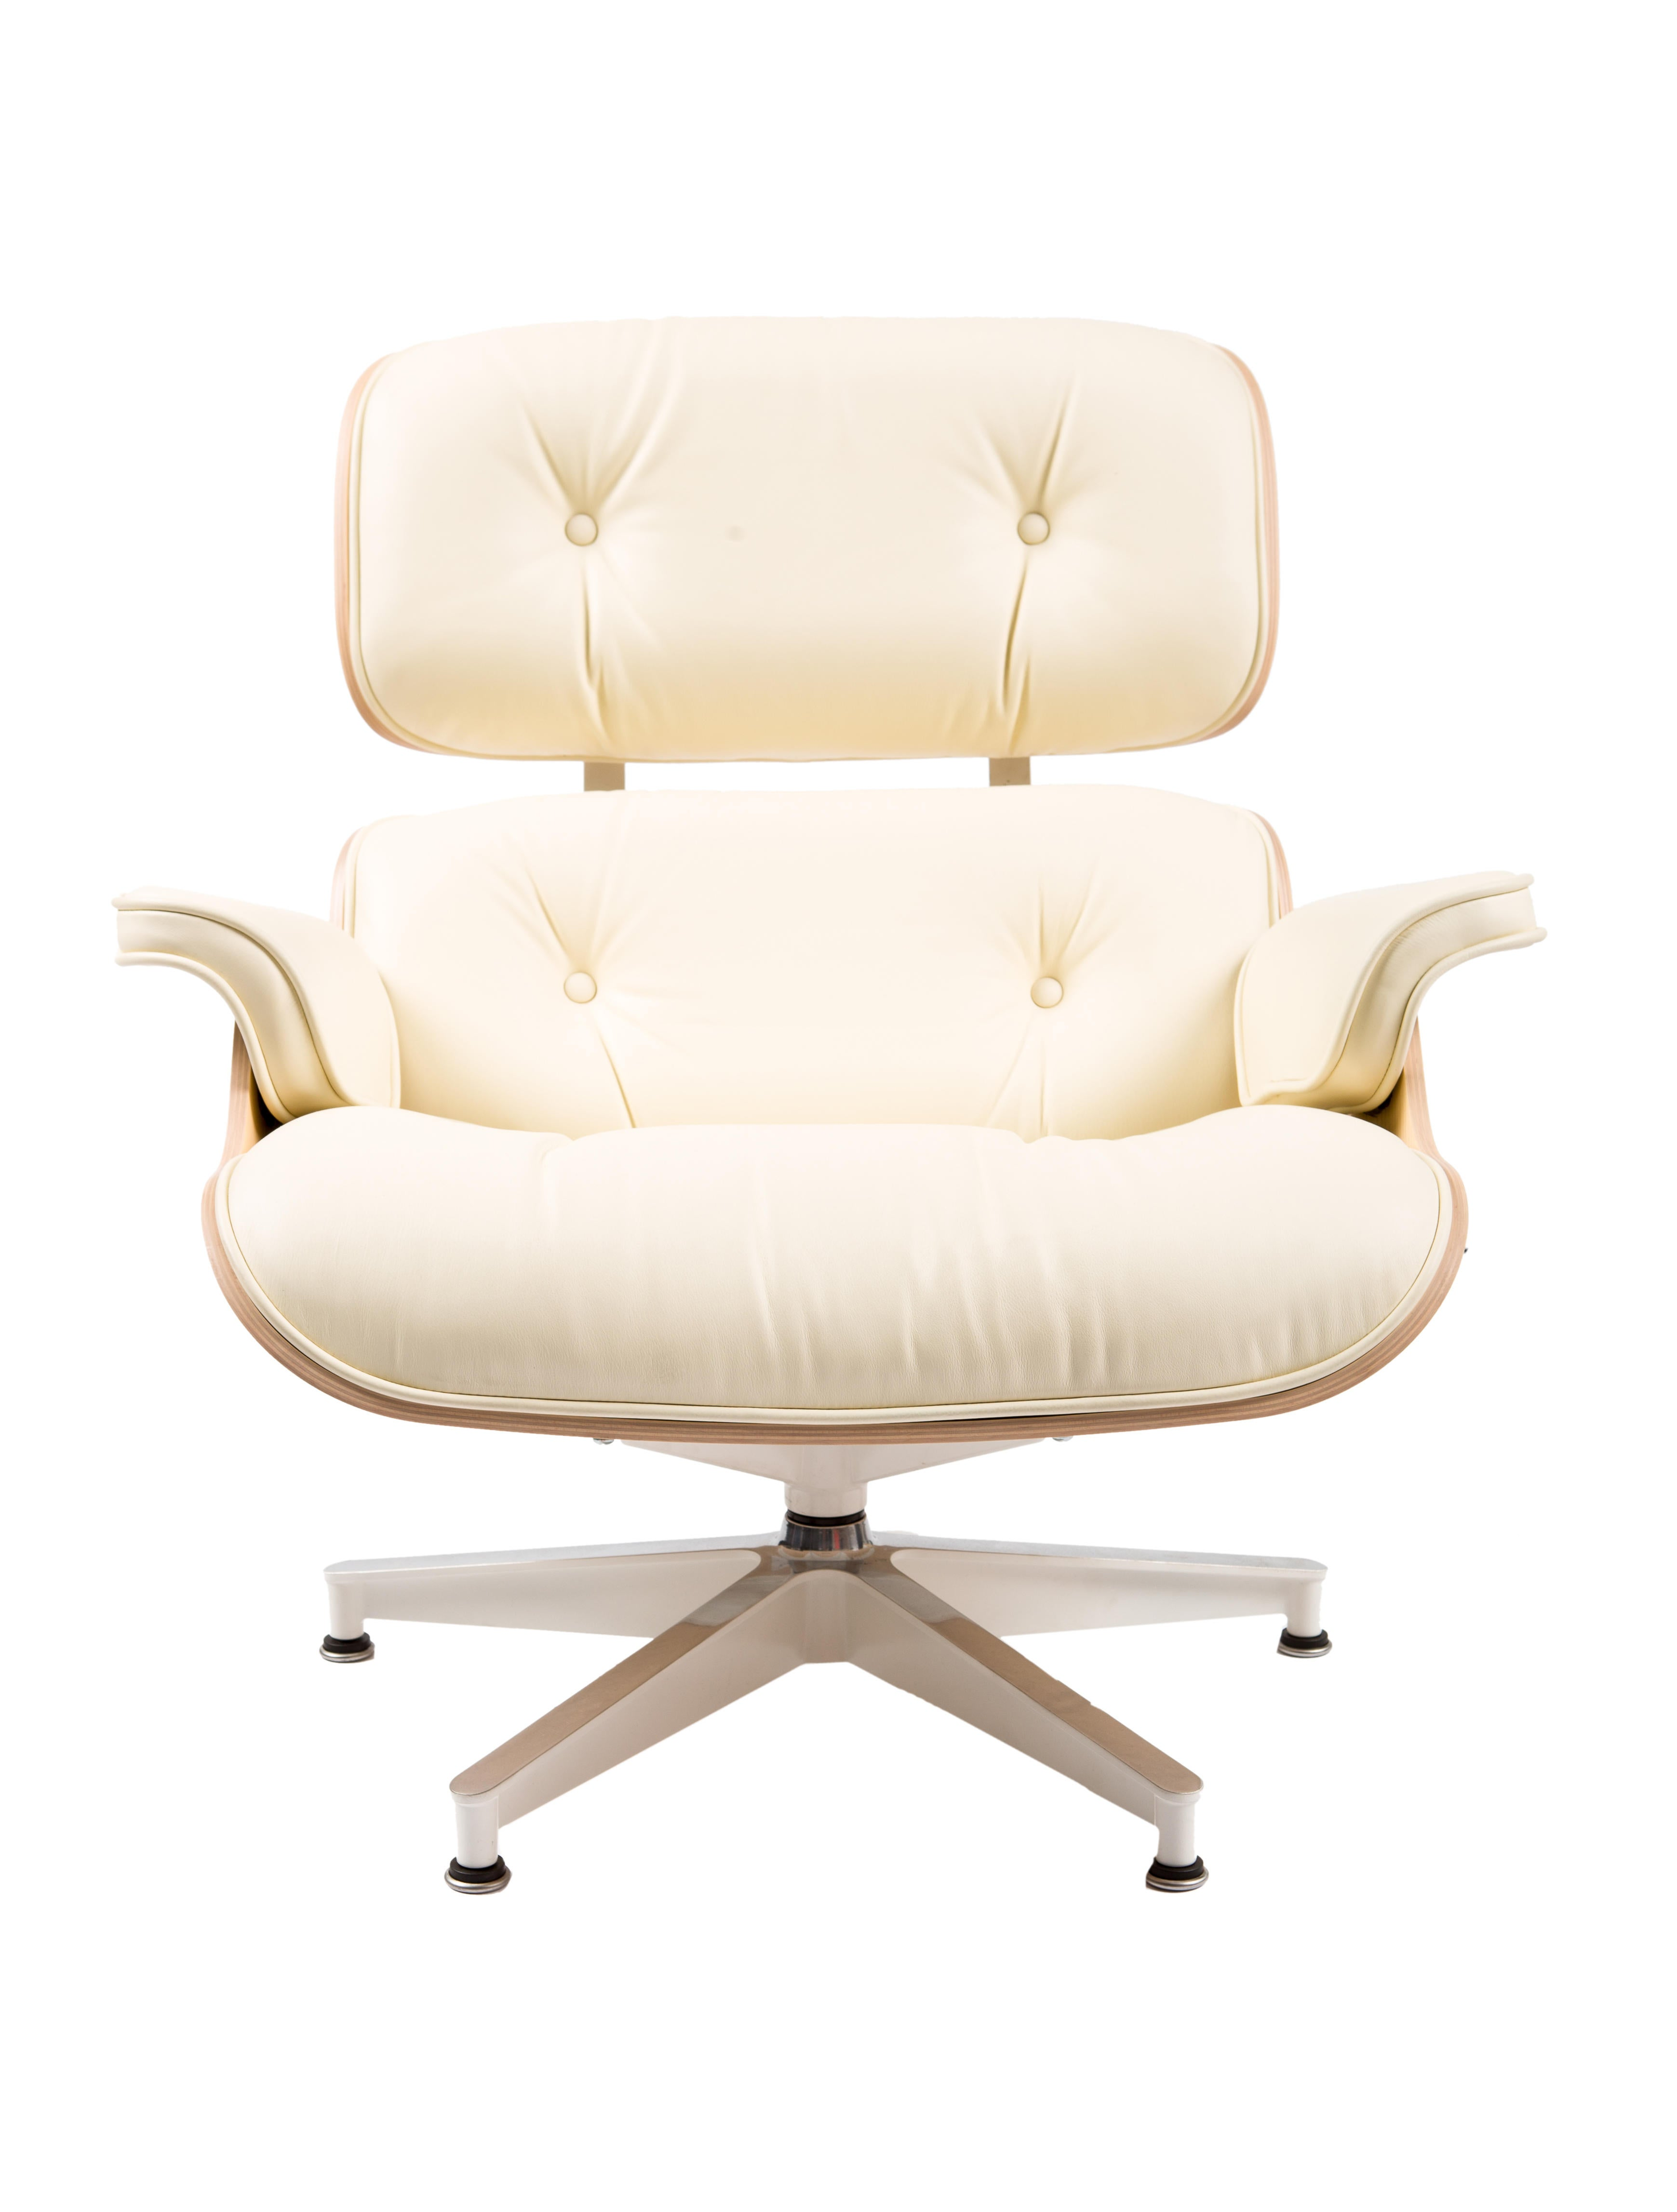 Eames For Herman Miller Lounge Chair & Ottoman Furniture